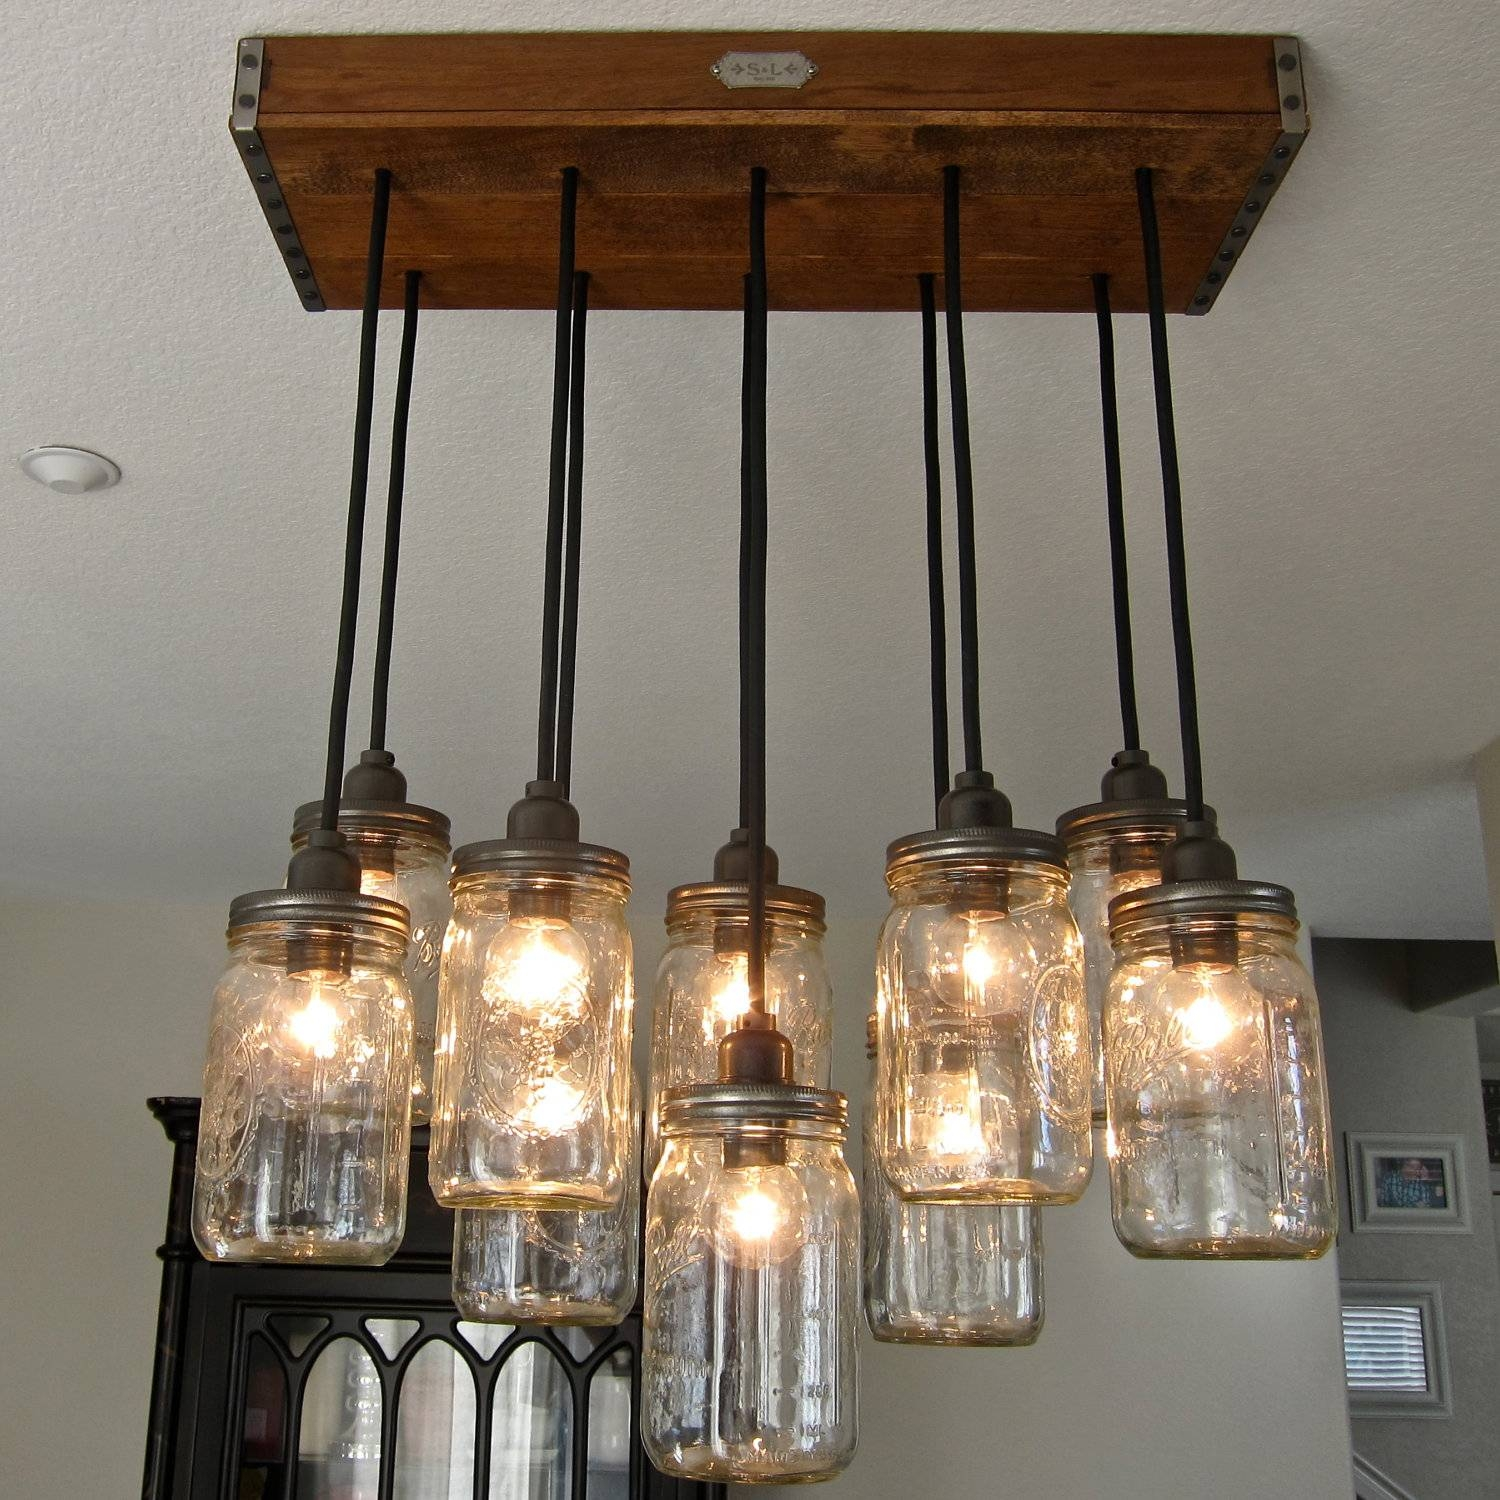 18 Diy Mason Jar Chandelier Ideas | Guide Patterns with regard to Mason Jar Pendant Lights For Sale (Image 1 of 15)